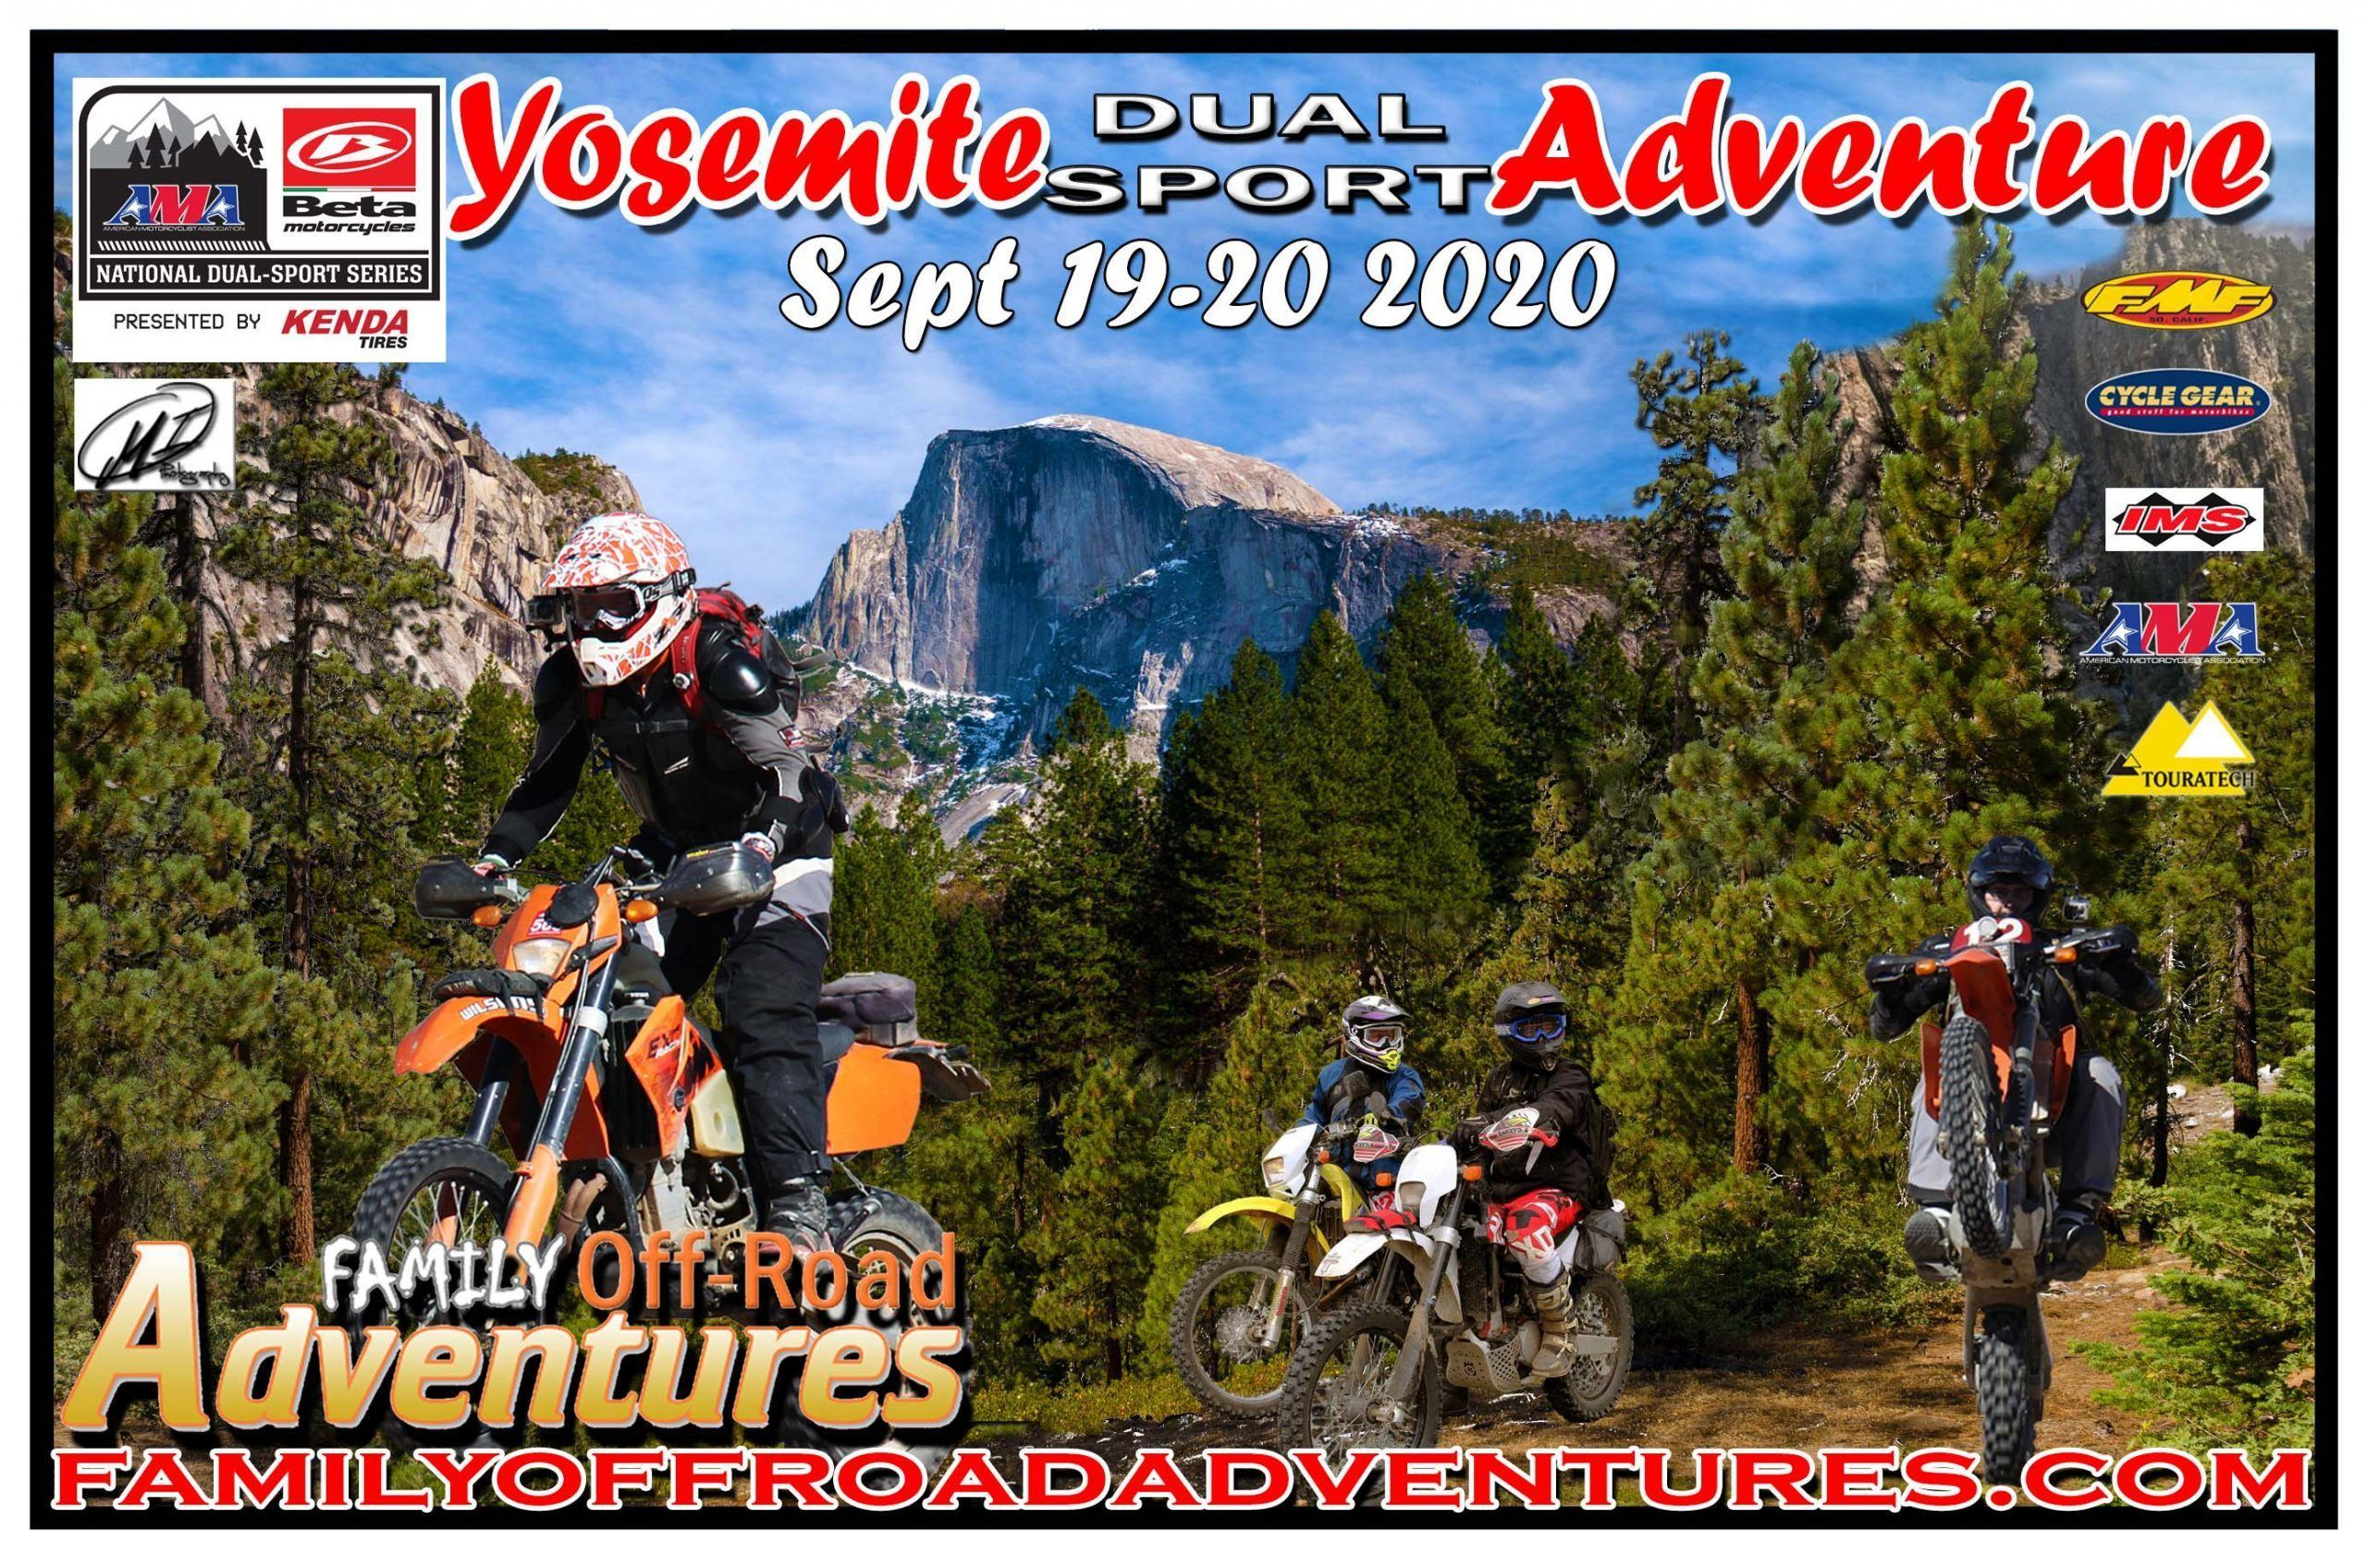 Yosemite Dual Sport Adventure - Web